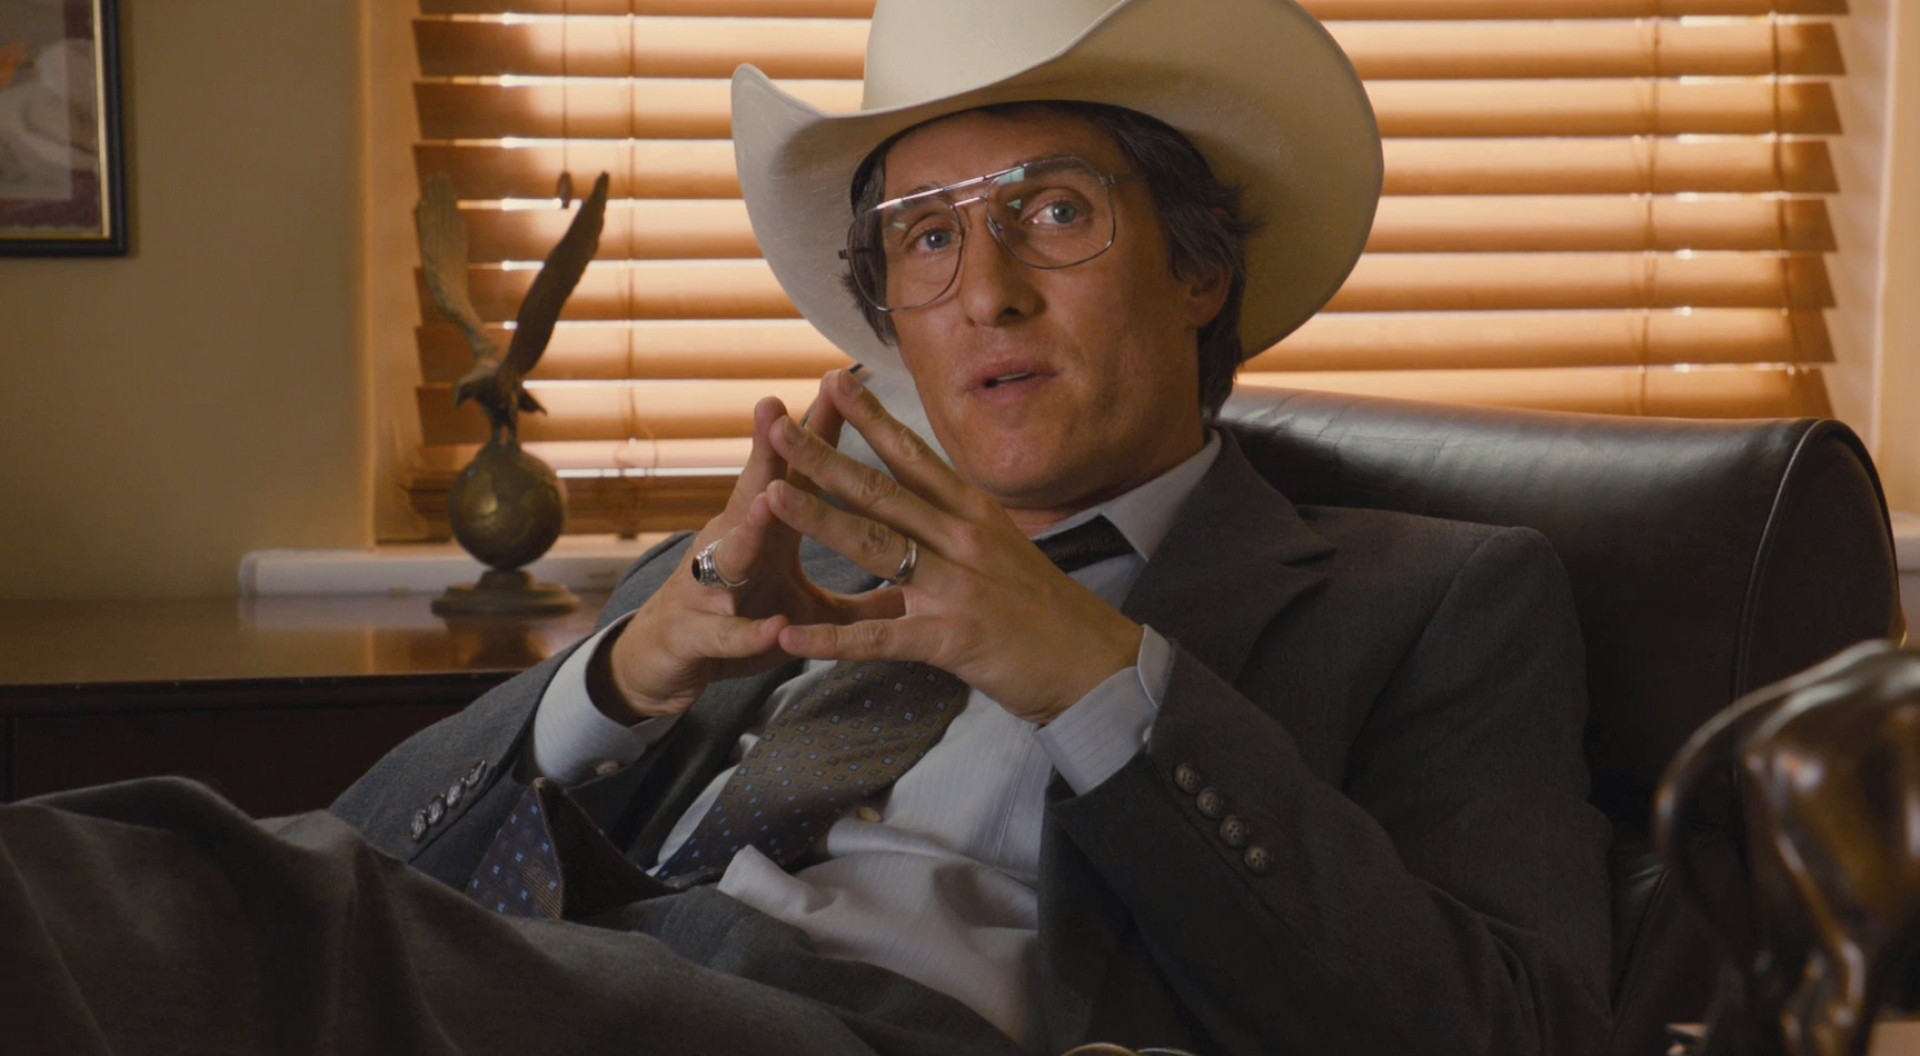 List of Top 10 movies with Matthew McConaughey